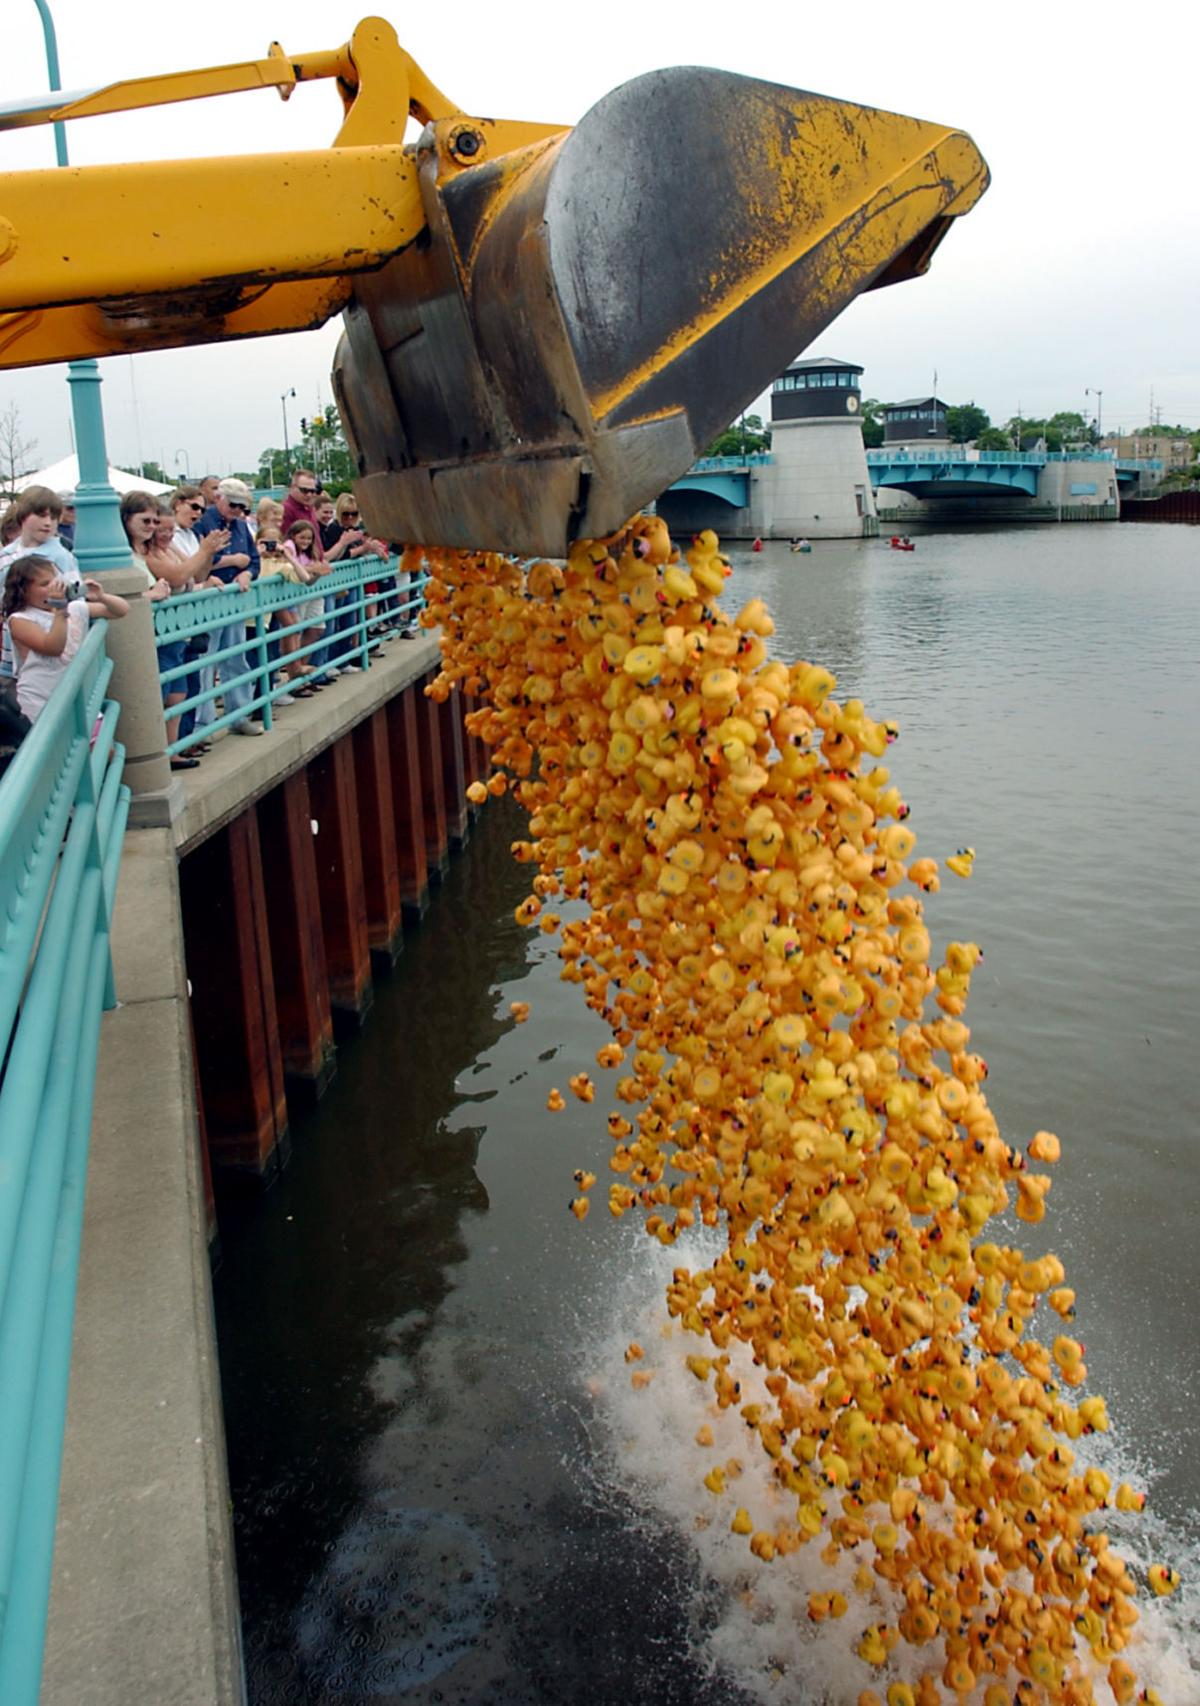 Off to the duck race, rubber duck derby comes to Racine | Local News ...